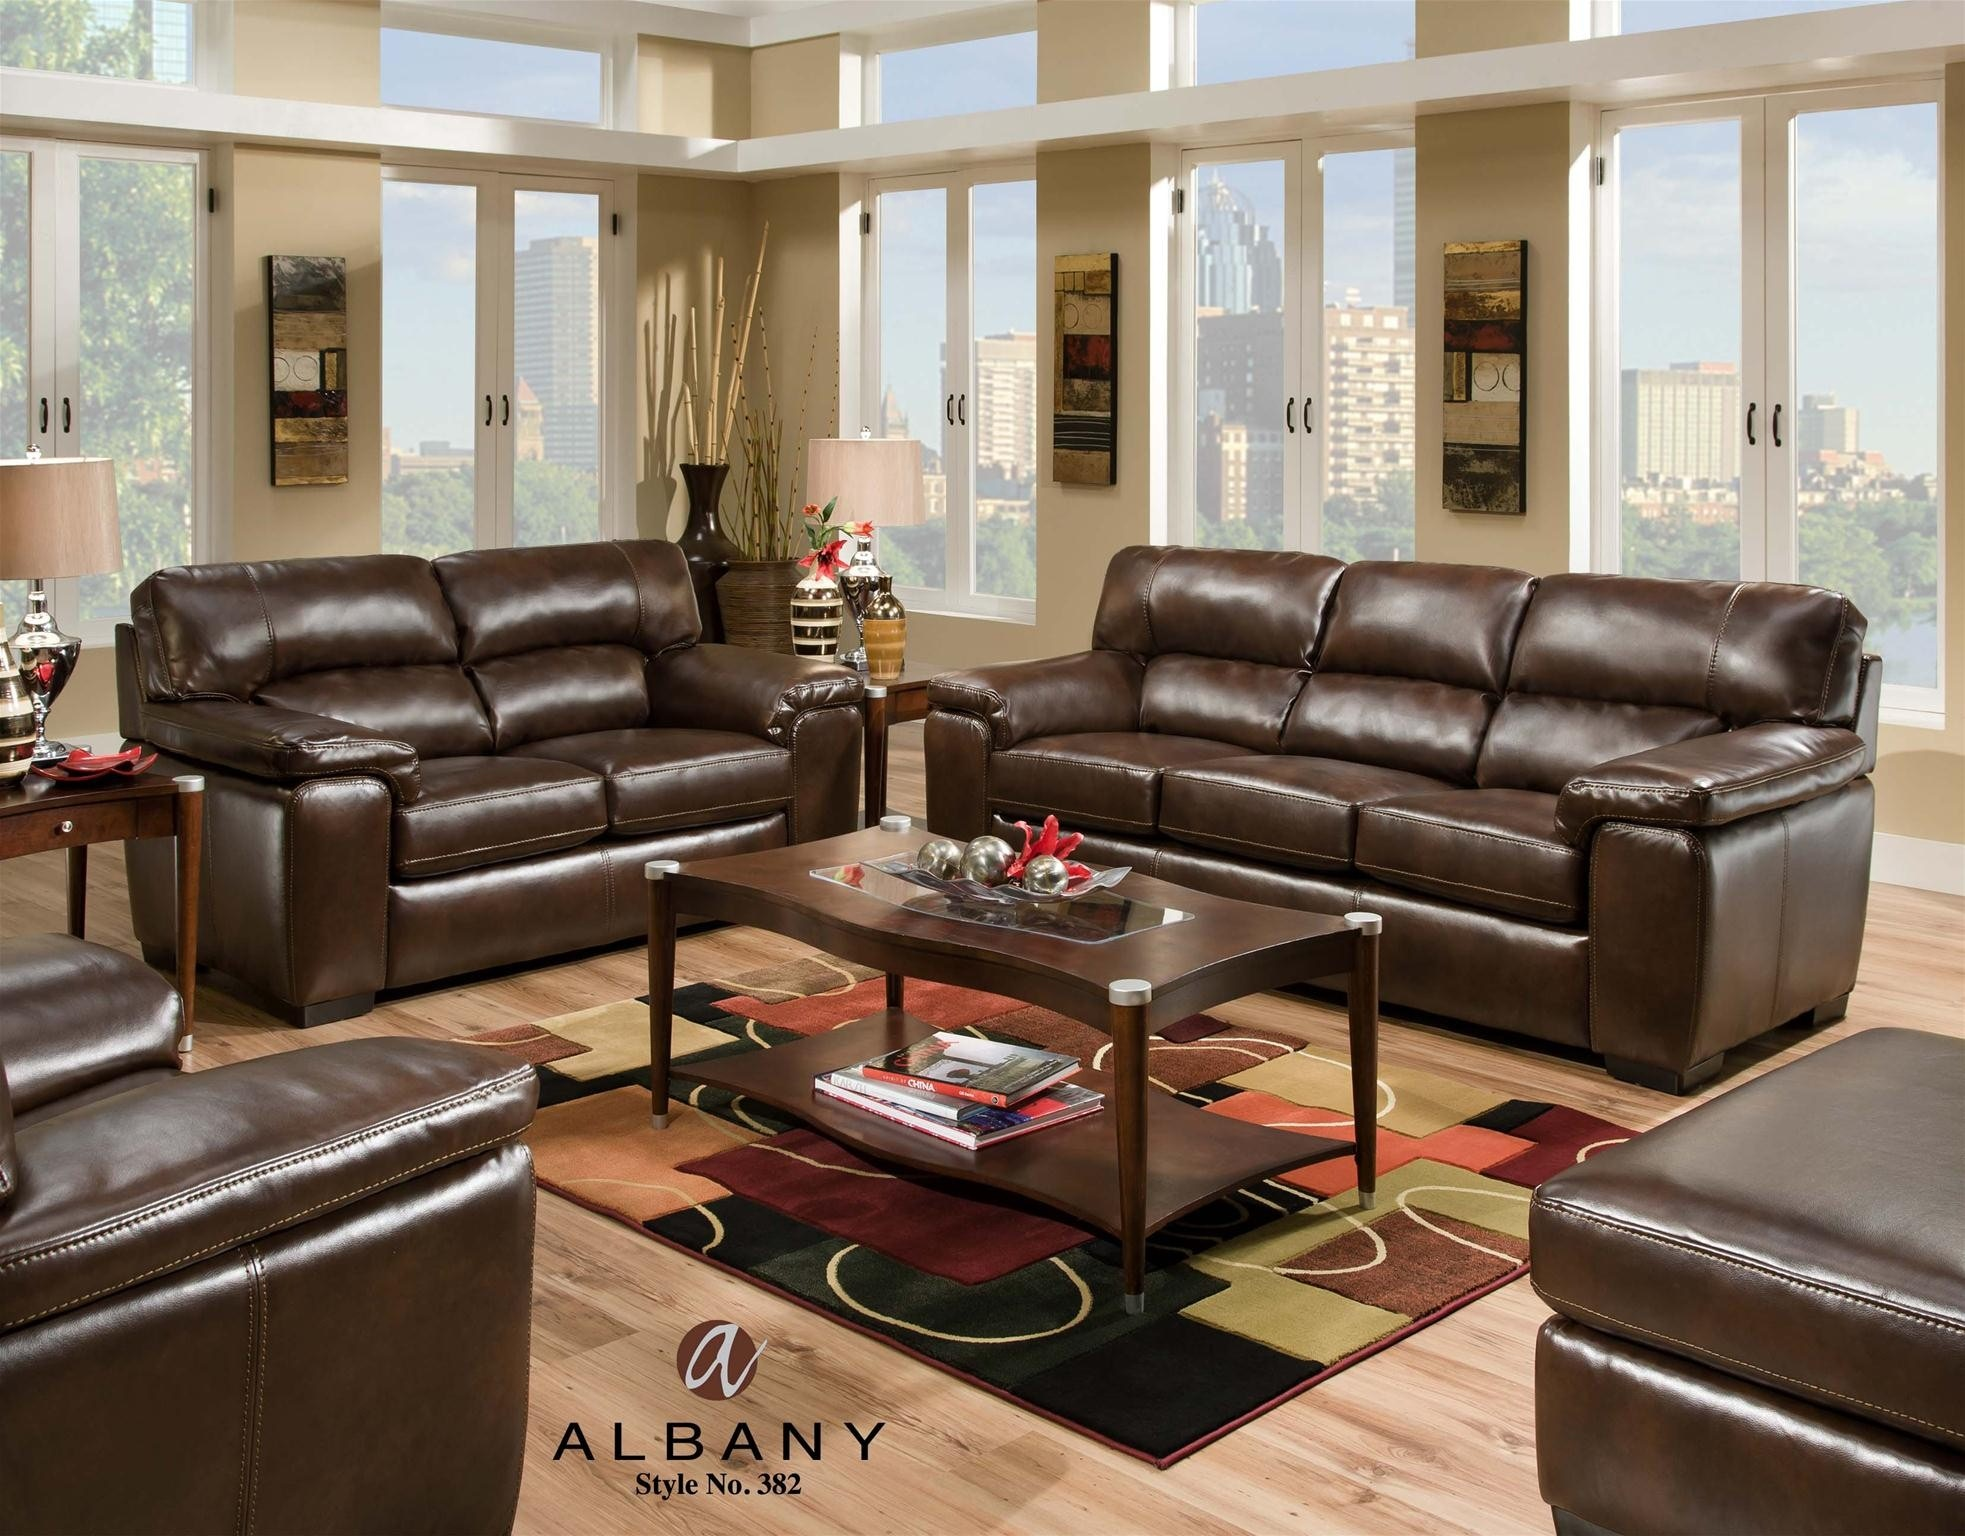 Albany CHAIR 382 20